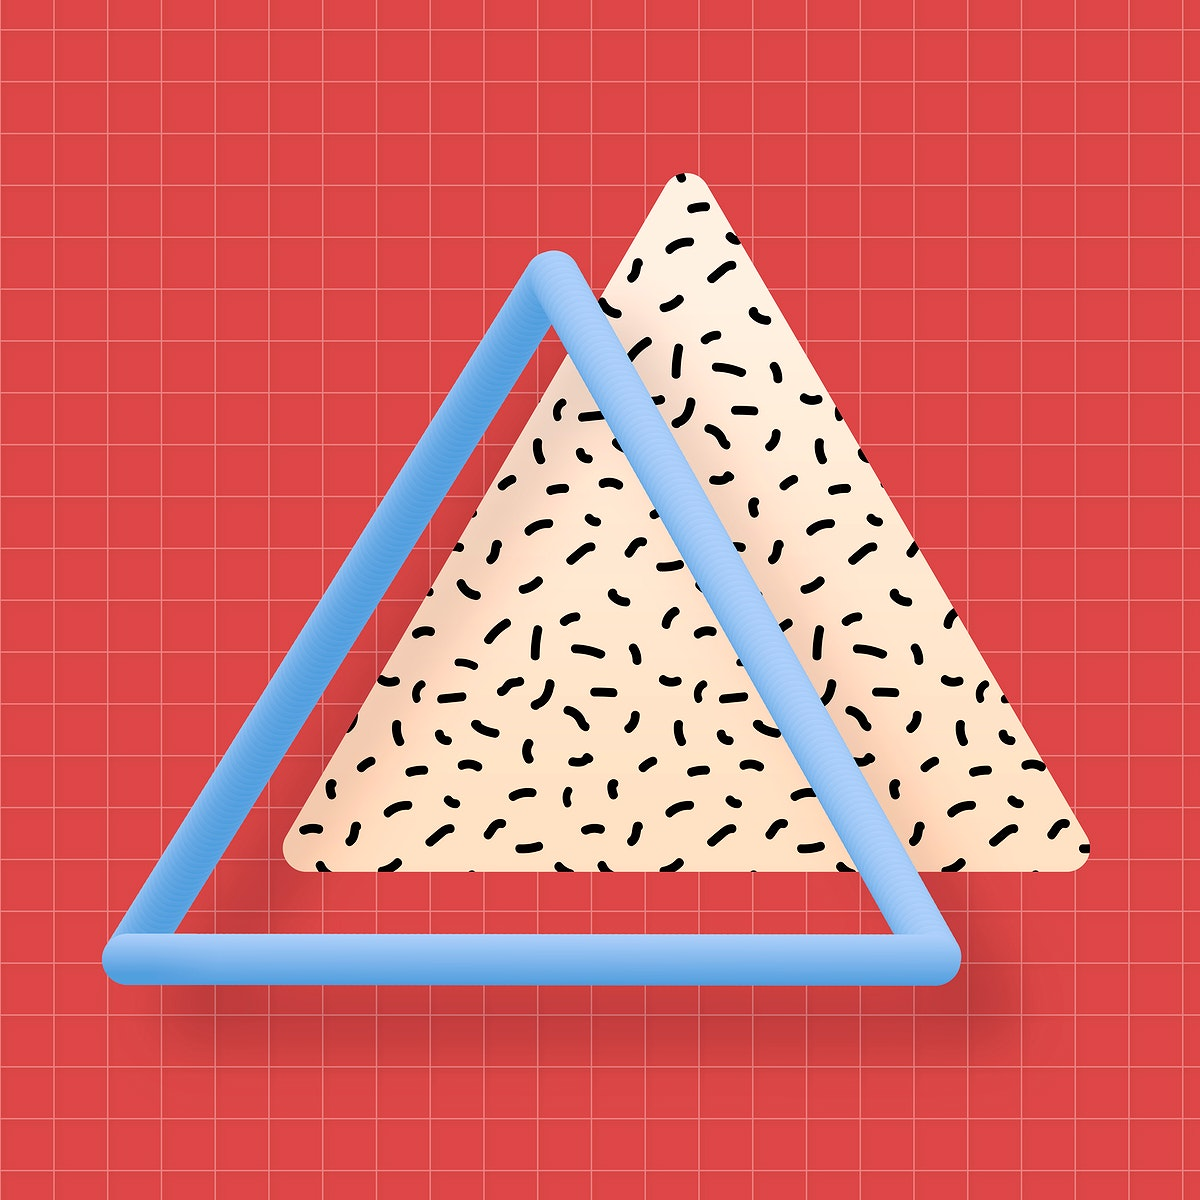 Triangle with bacterio print on a red background vector